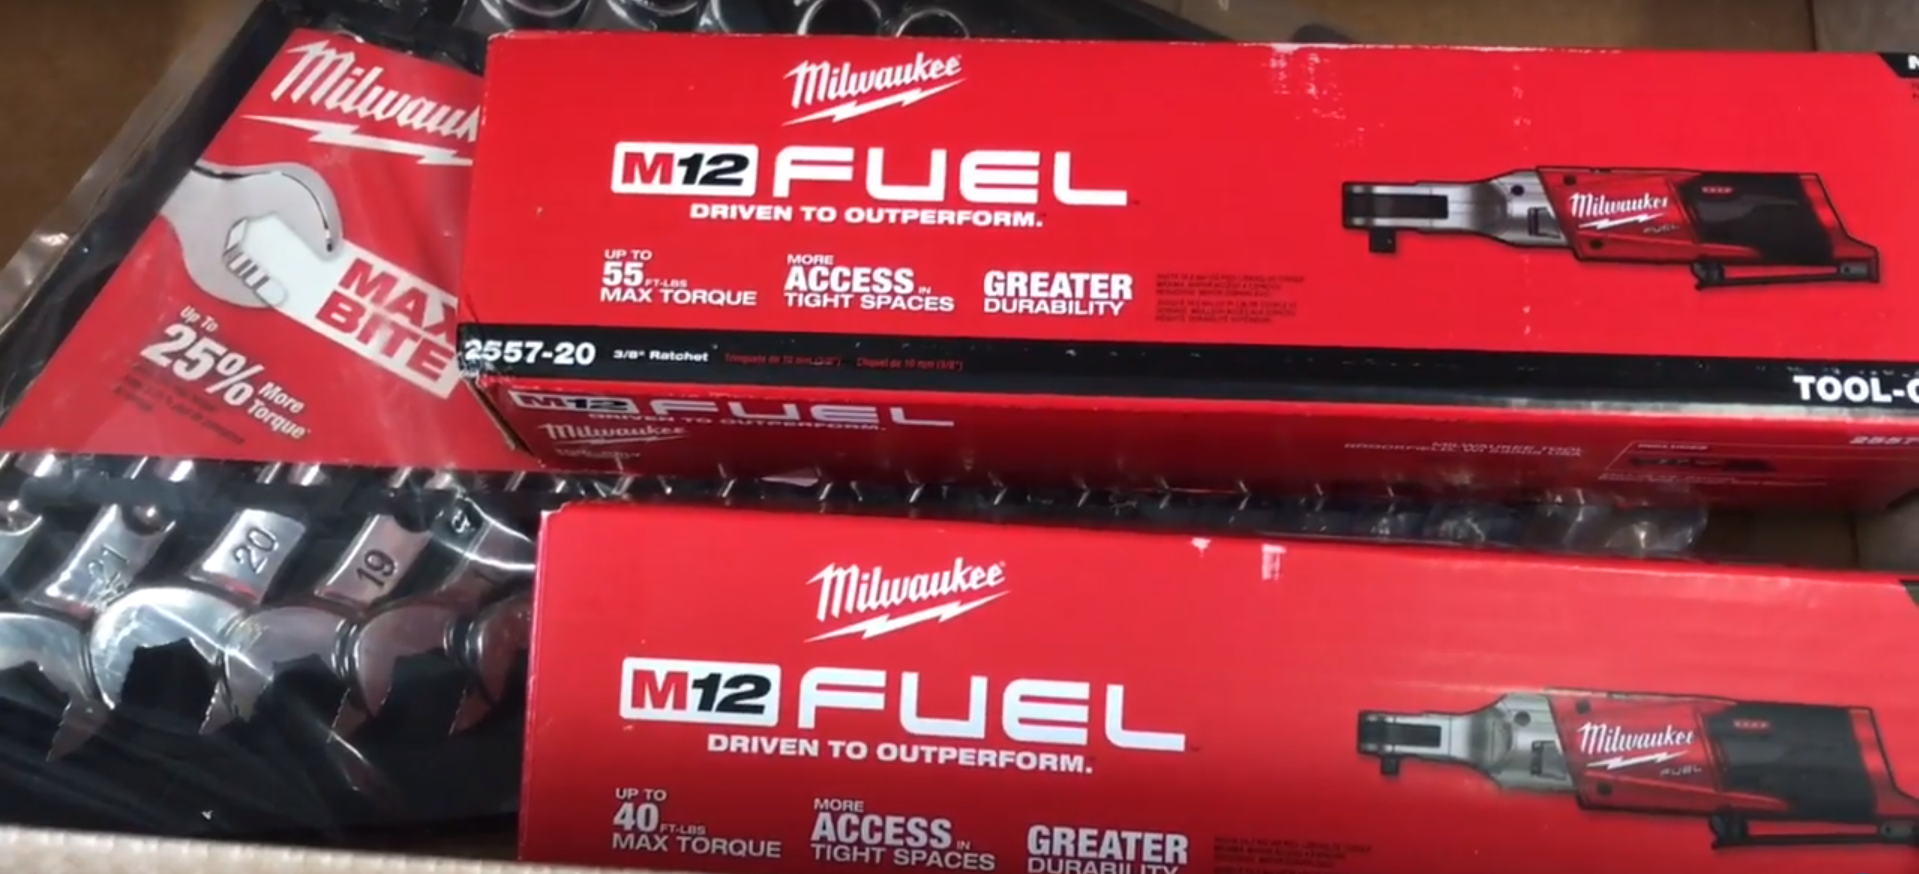 milwaukee m12 logo. the new second generation milwaukee m12 fuel cordless ratchets logo